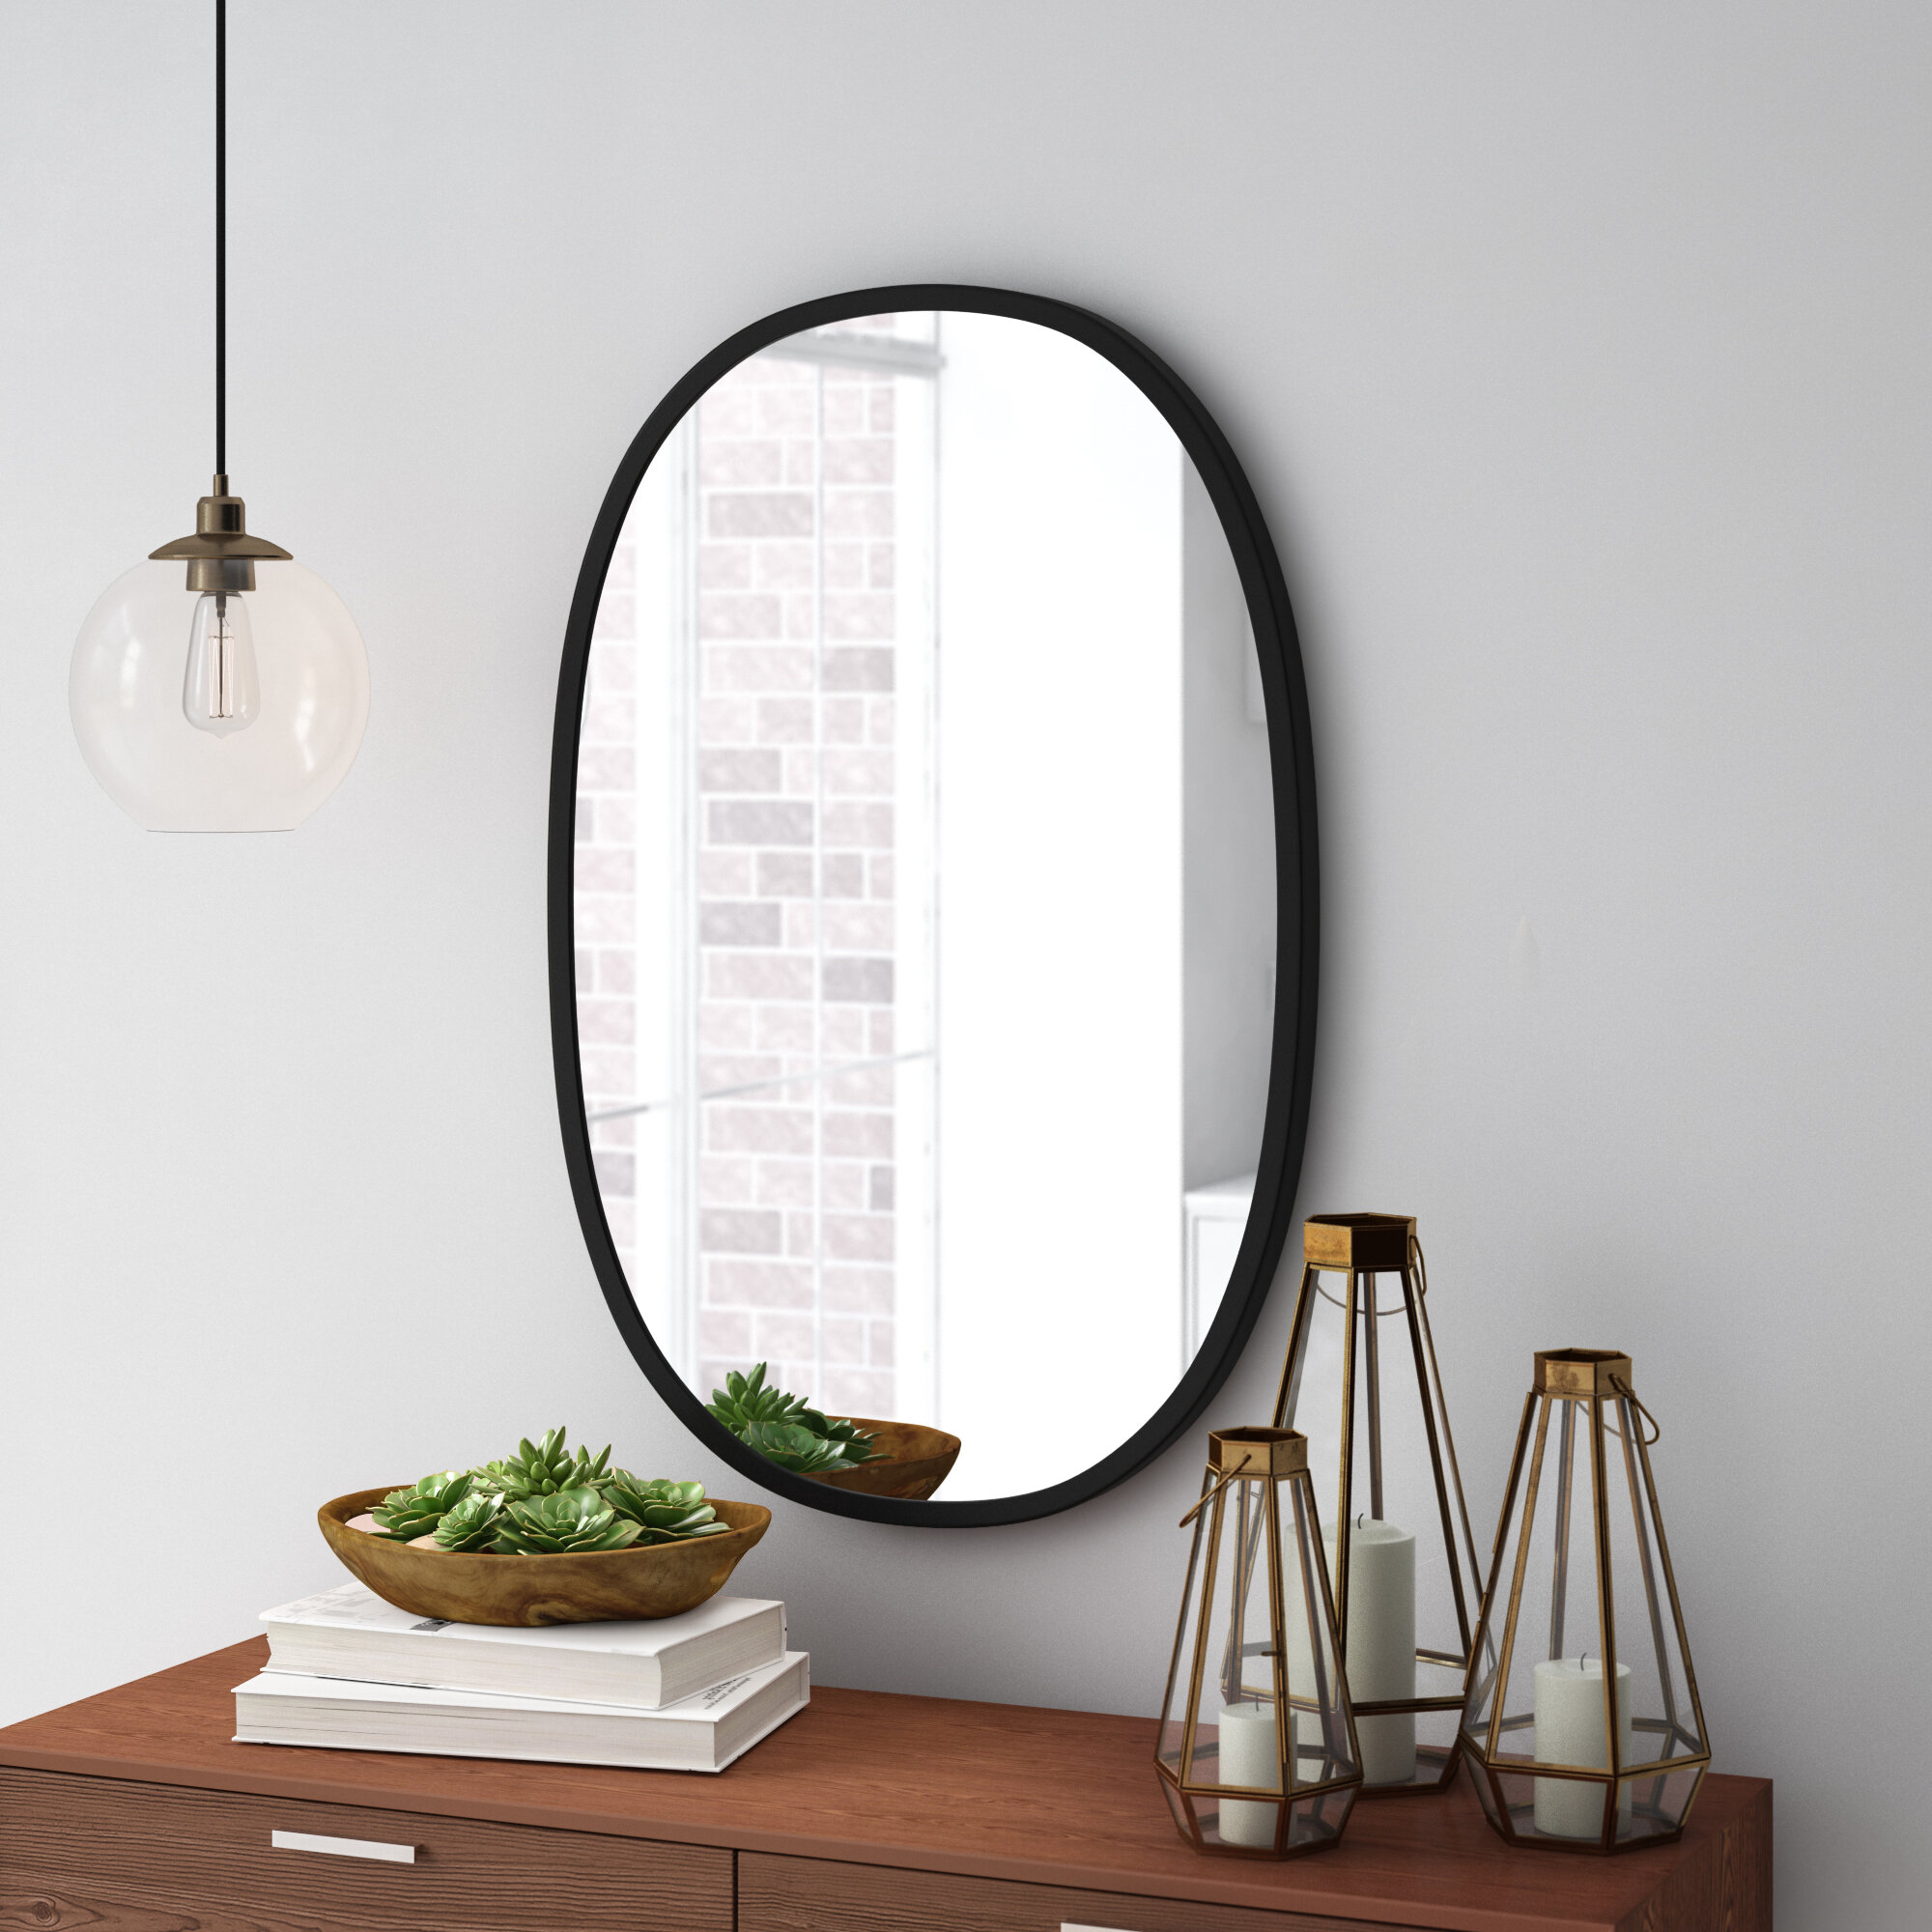 Oval Accent Mirrors You Ll Love In 2021 Wayfair